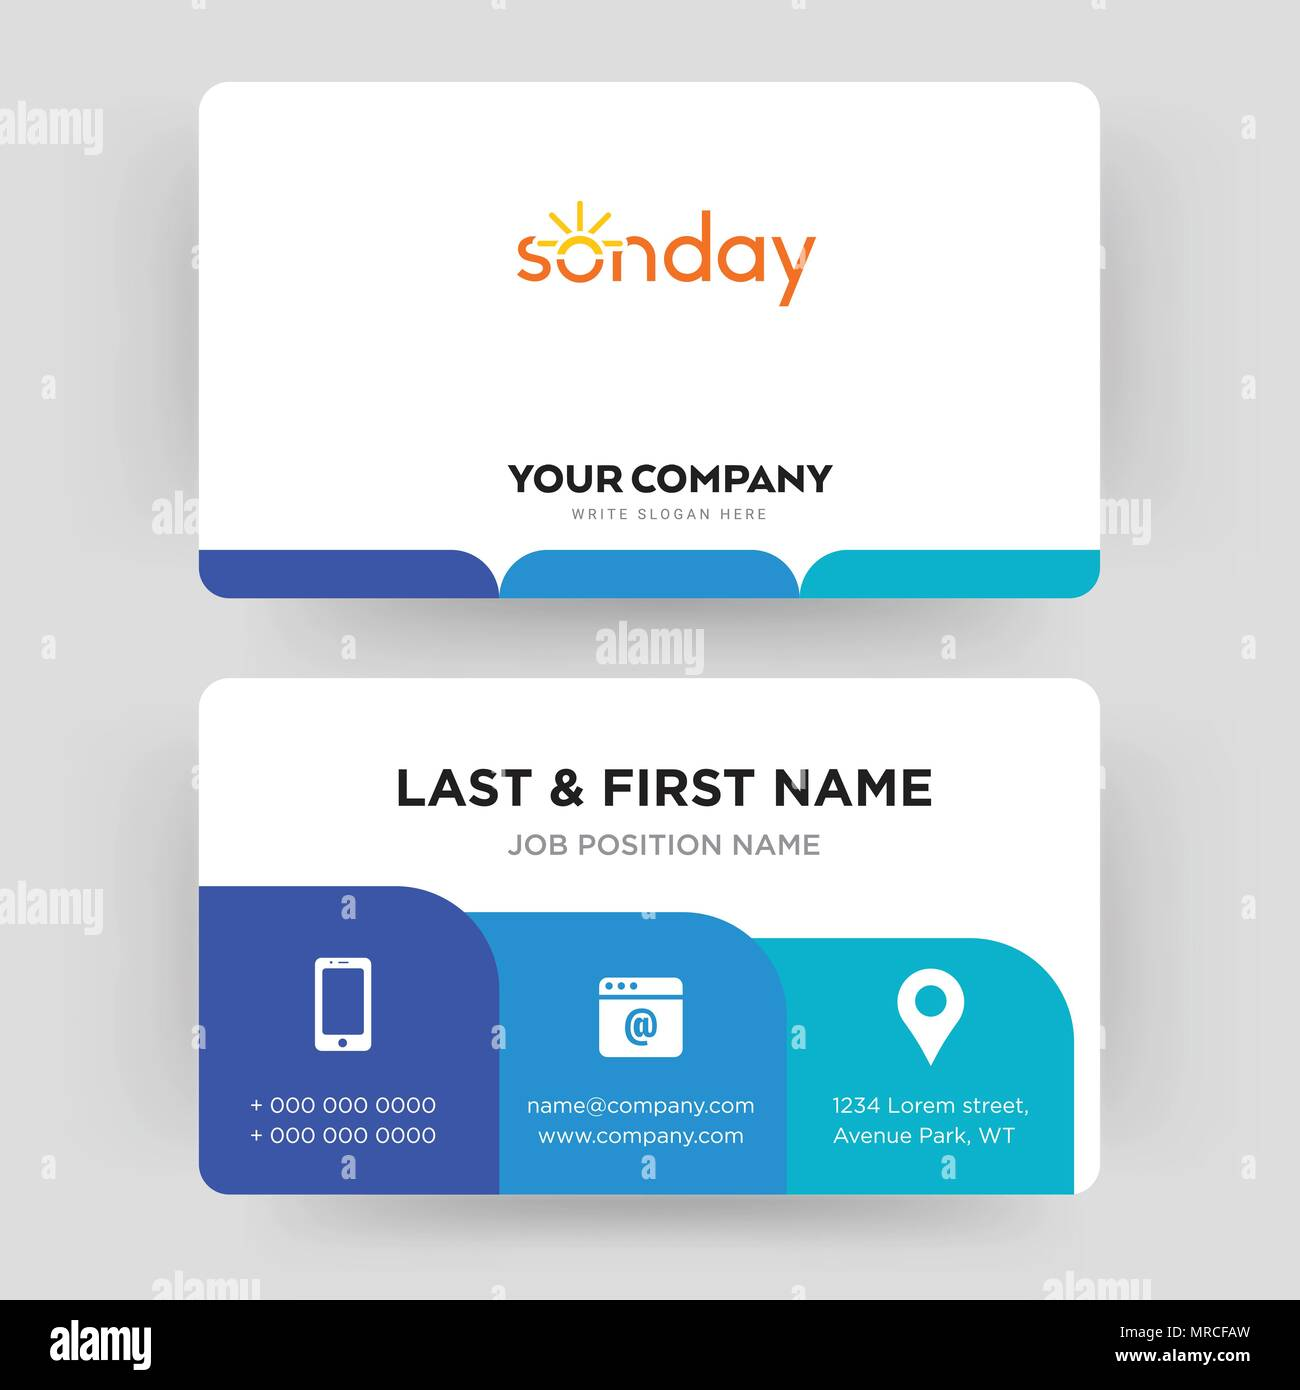 Sunday business card design template visiting for your company sunday business card design template visiting for your company modern creative and clean identity card vector colourmoves